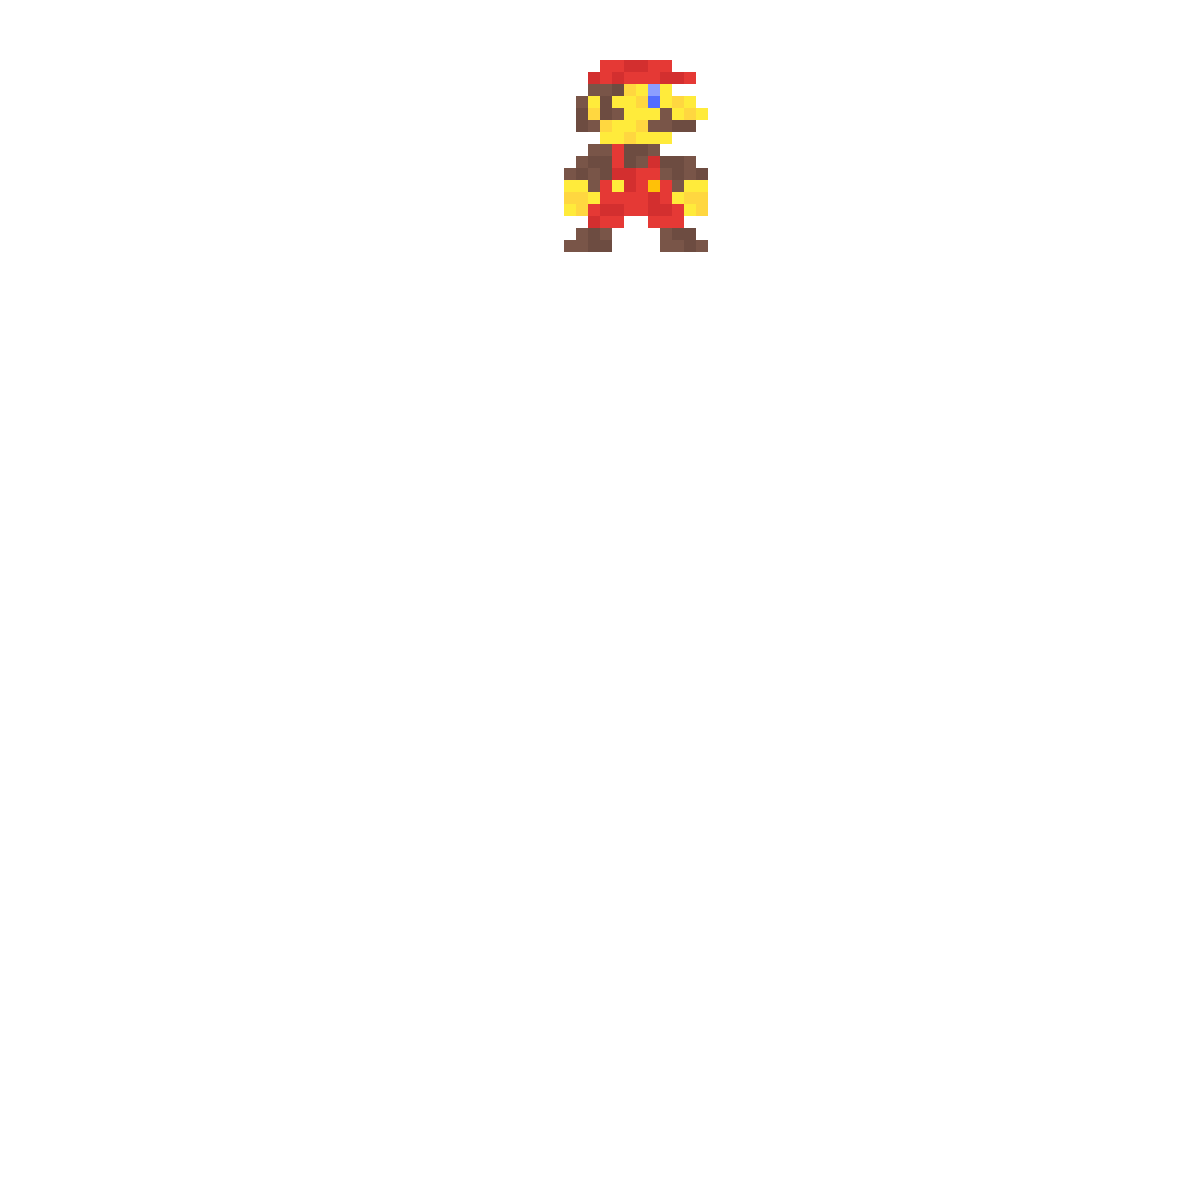 Detailed 8-bit Mario by Minuteqade